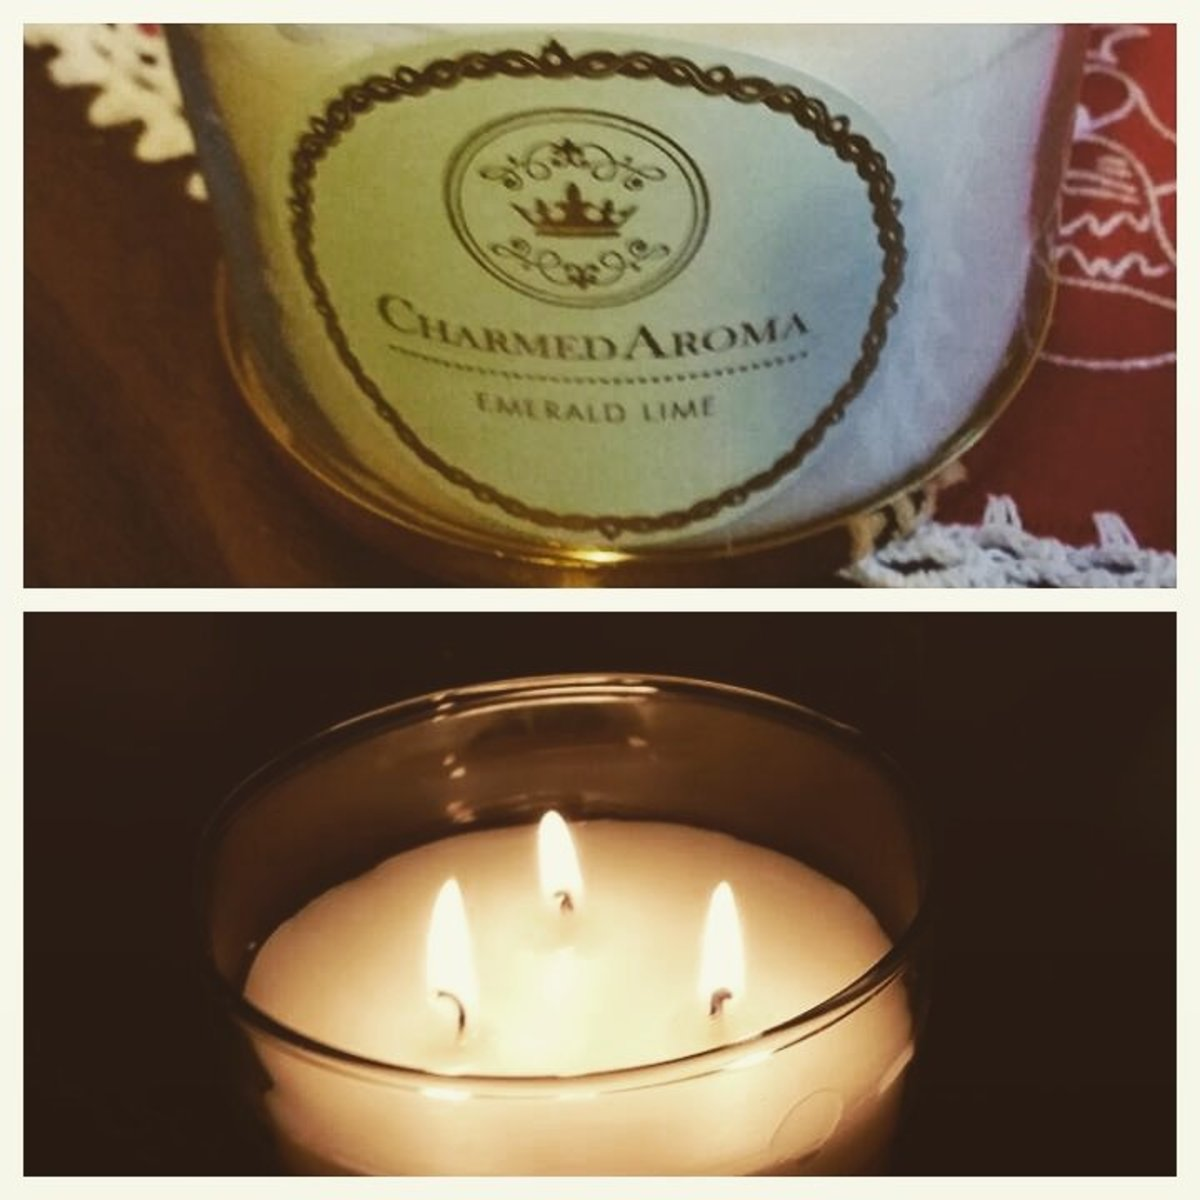 Review of Charmed Aroma Candles and Rings: My Experience